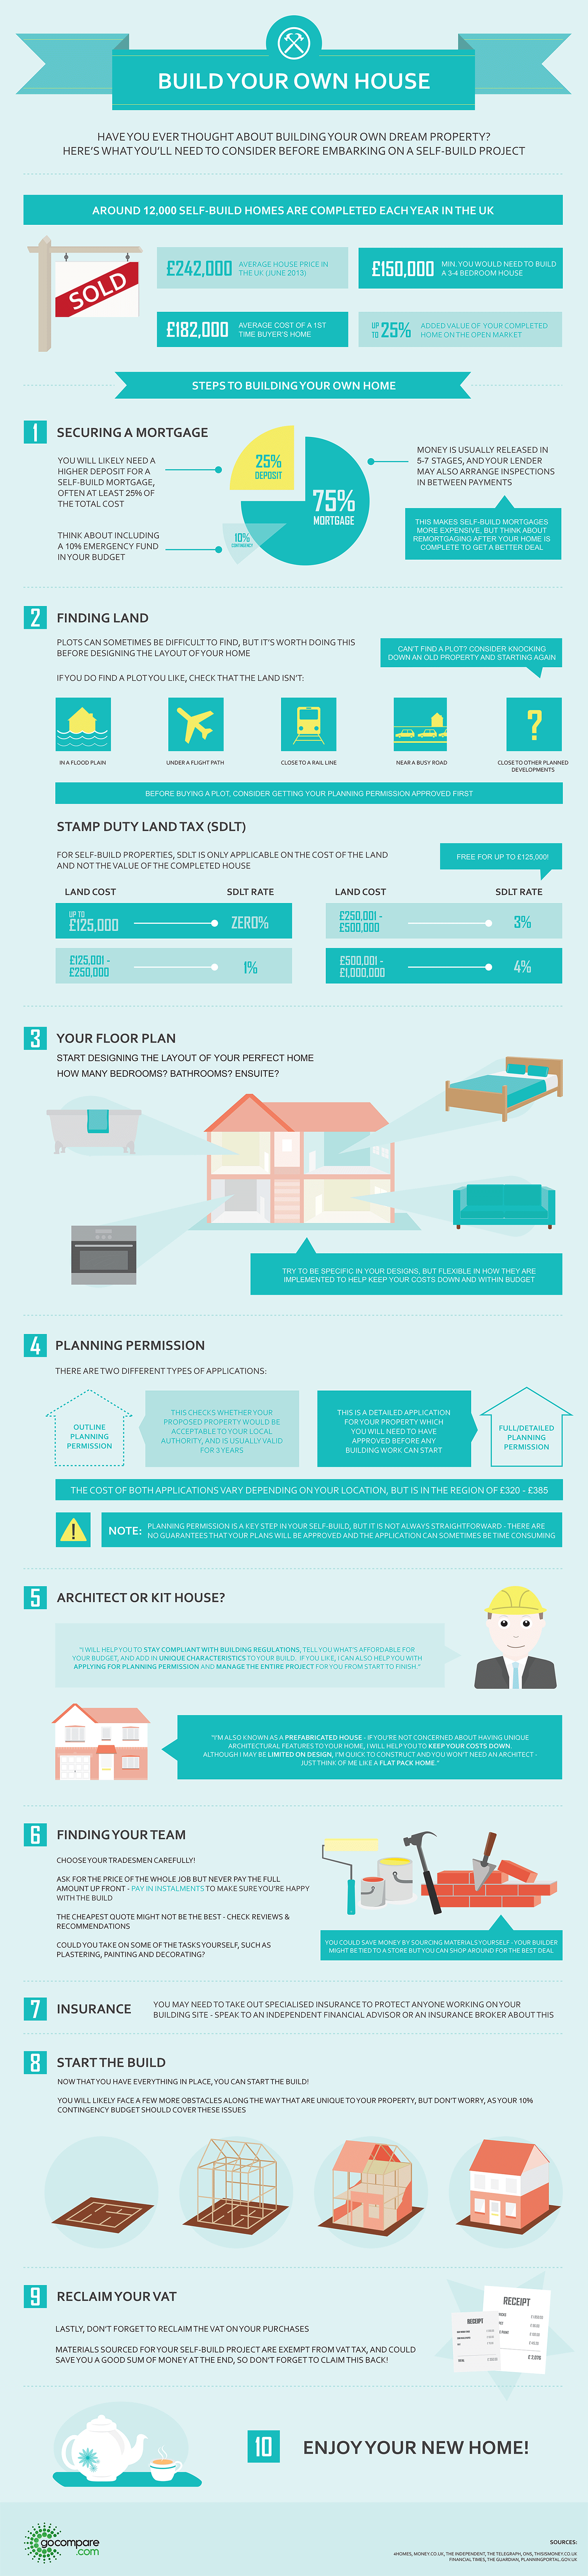 Build Your Own House Infographic